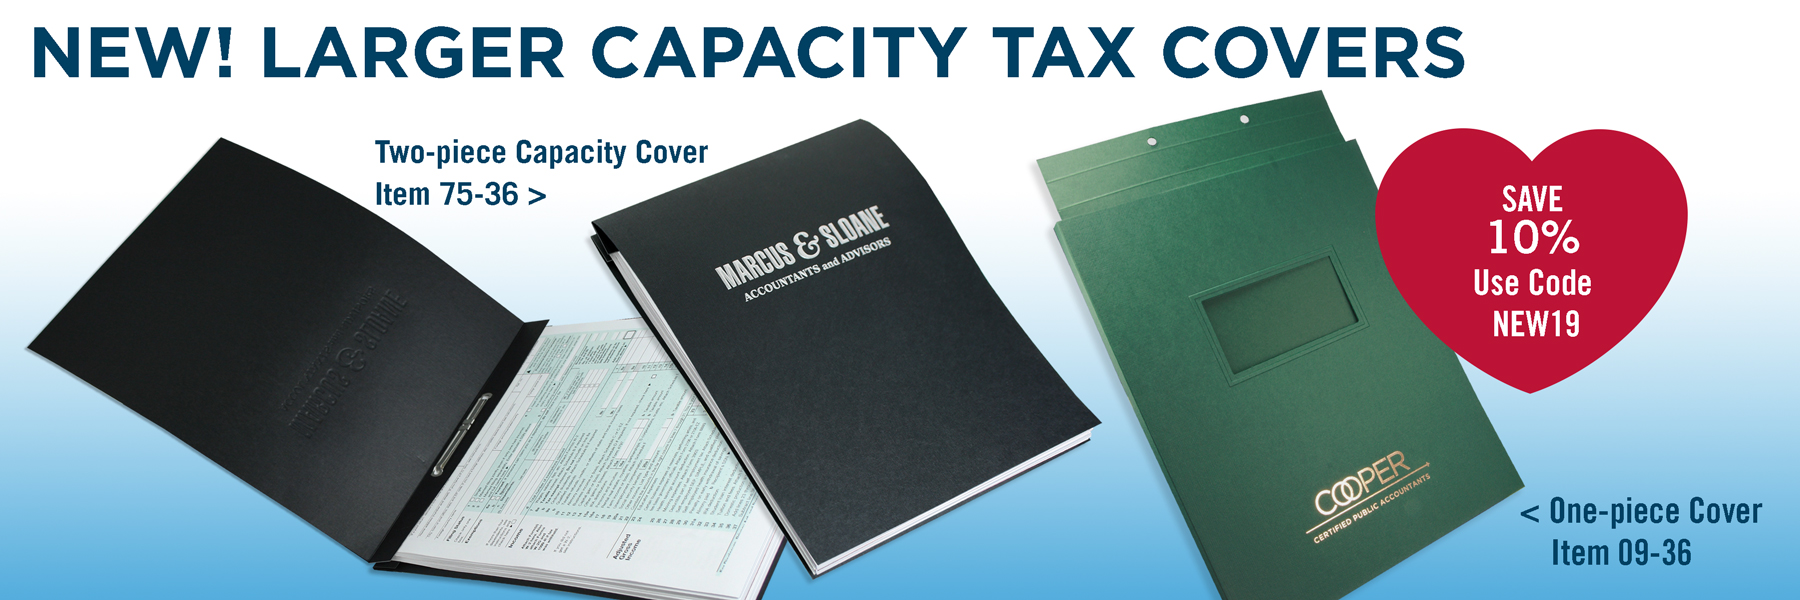 Larger Capacity Tax Covers